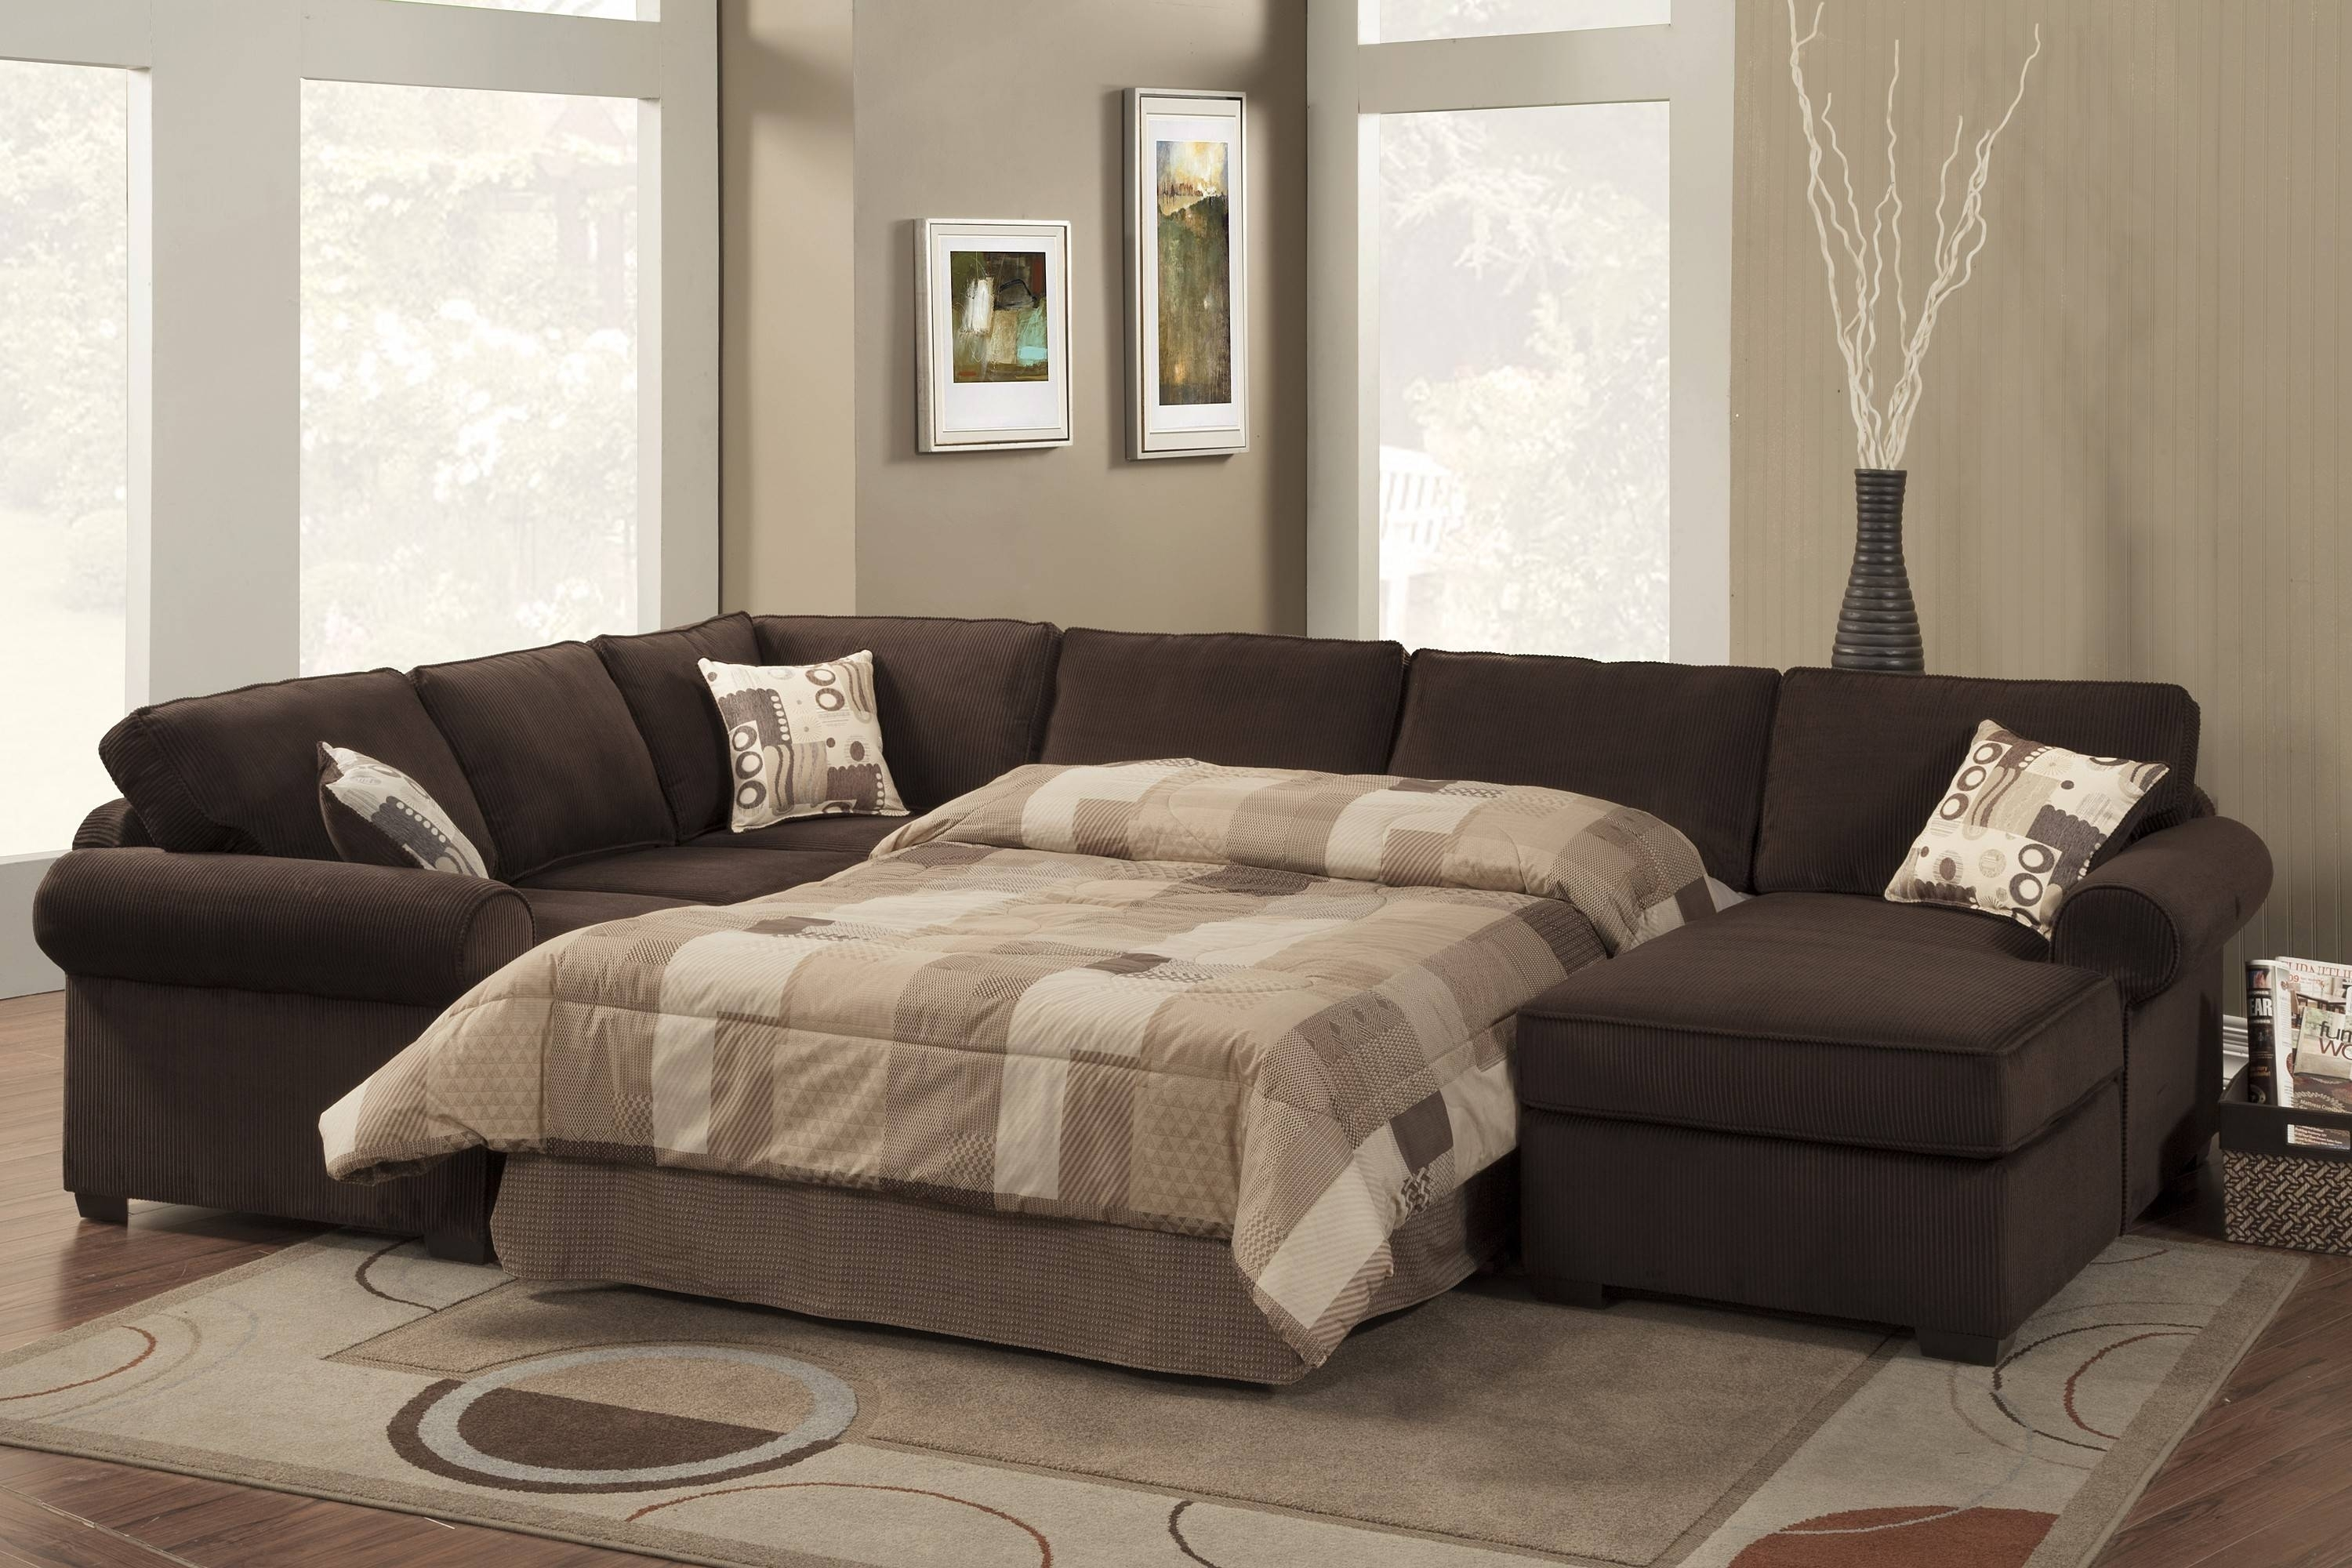 Cheap Sectional Sofas With Wide Sectional Couch With New Sectional Throughout Wide Sectional Sofas (Image 1 of 10)